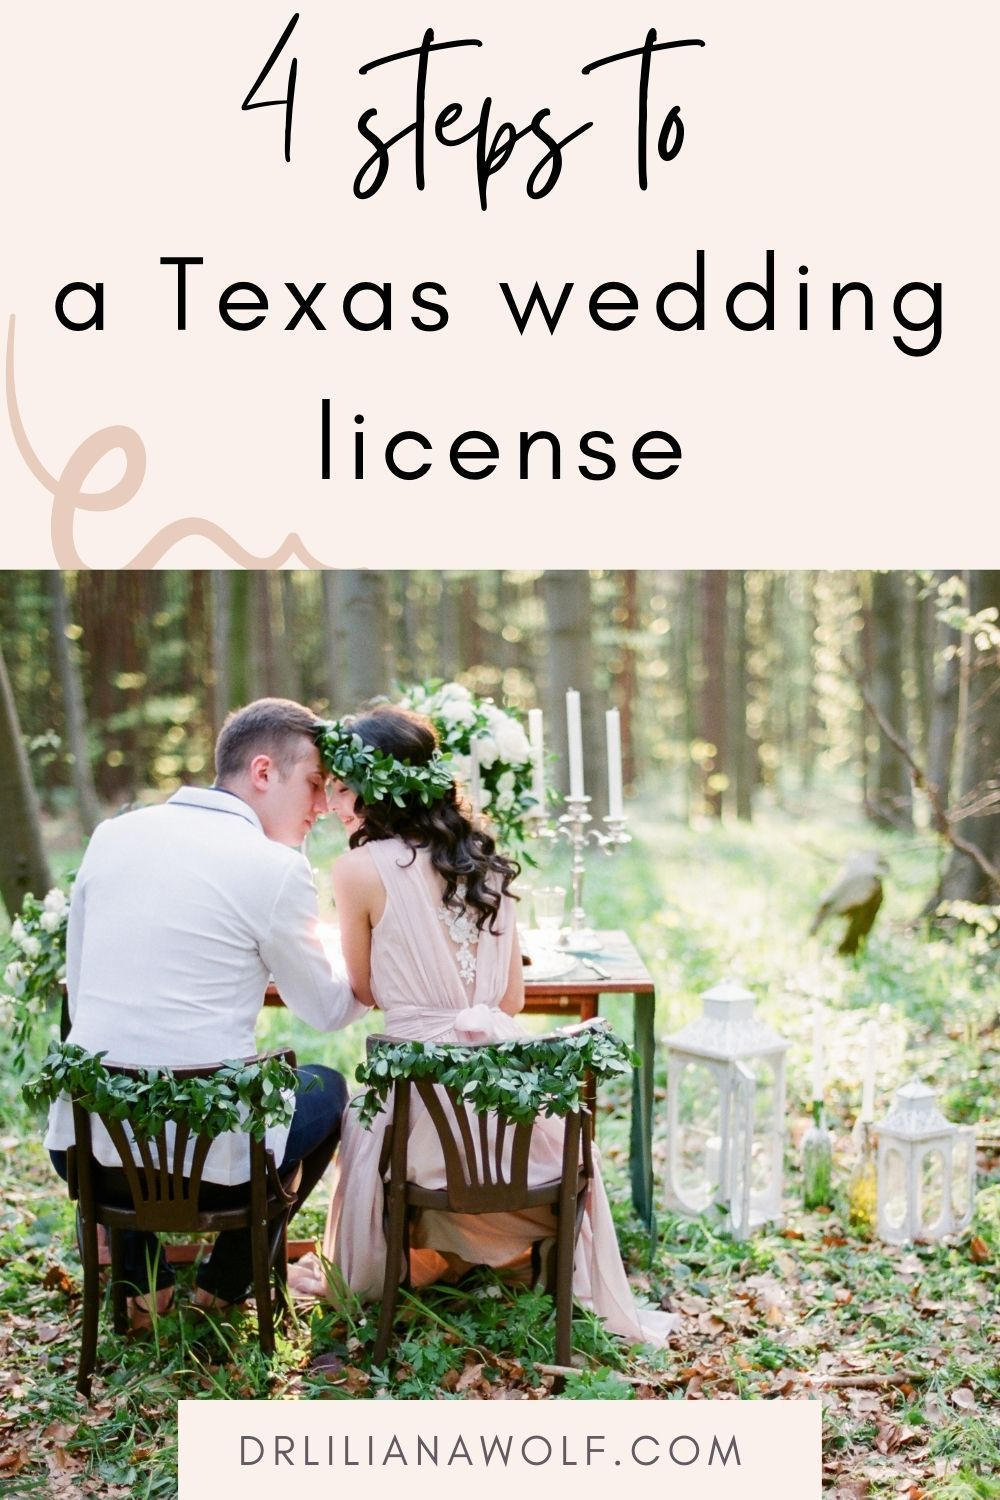 How To Get A Marriage License In Texas In Just 4 Steps In 2021 Marriage License Wedding License Preparing For Marriage